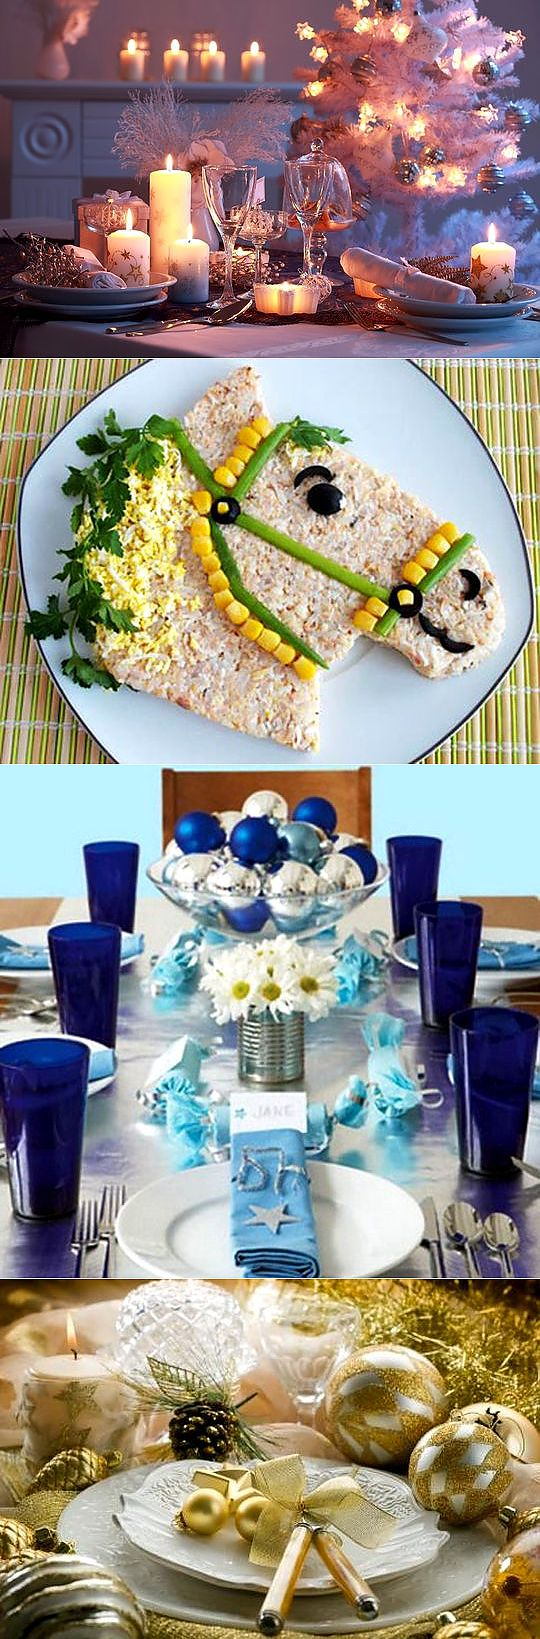 How to lay the New Year's table | muzrestor.ru